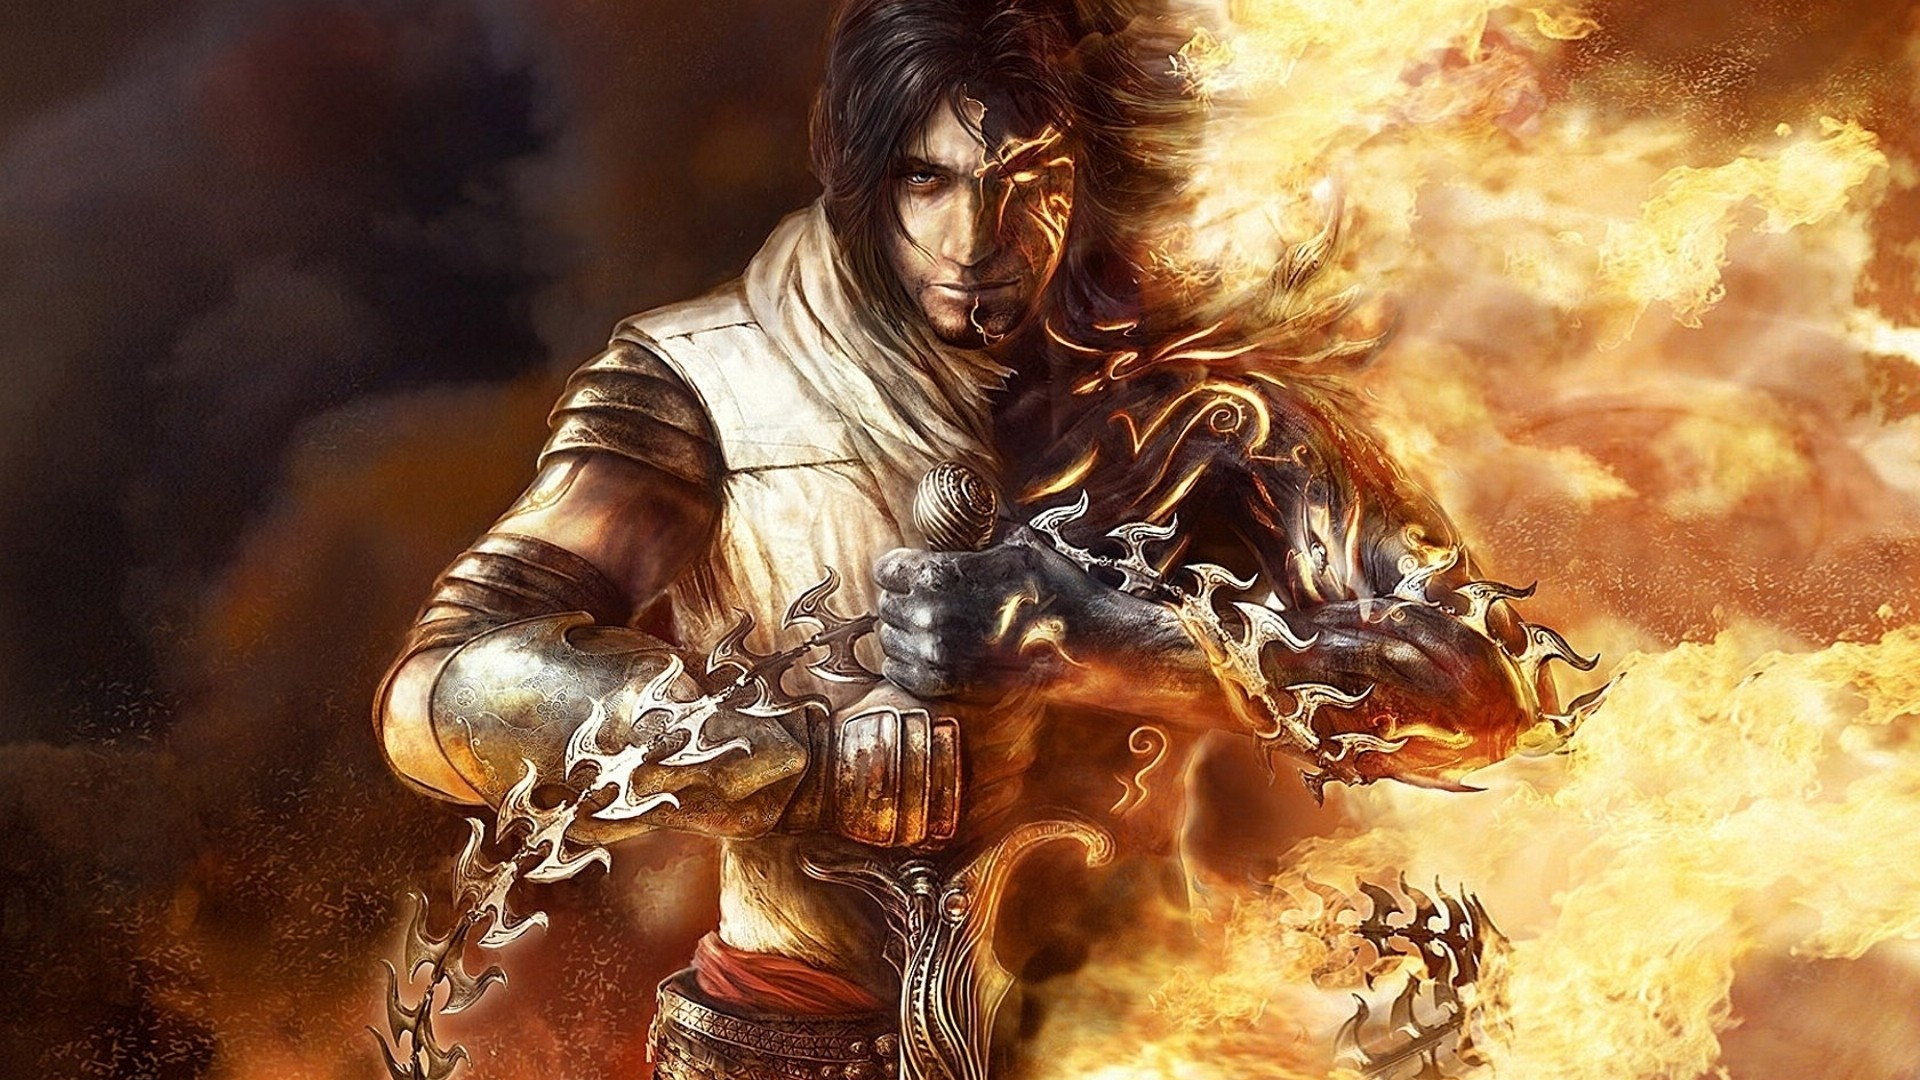 Prince Of Persia Wallpaper 69 Pictures